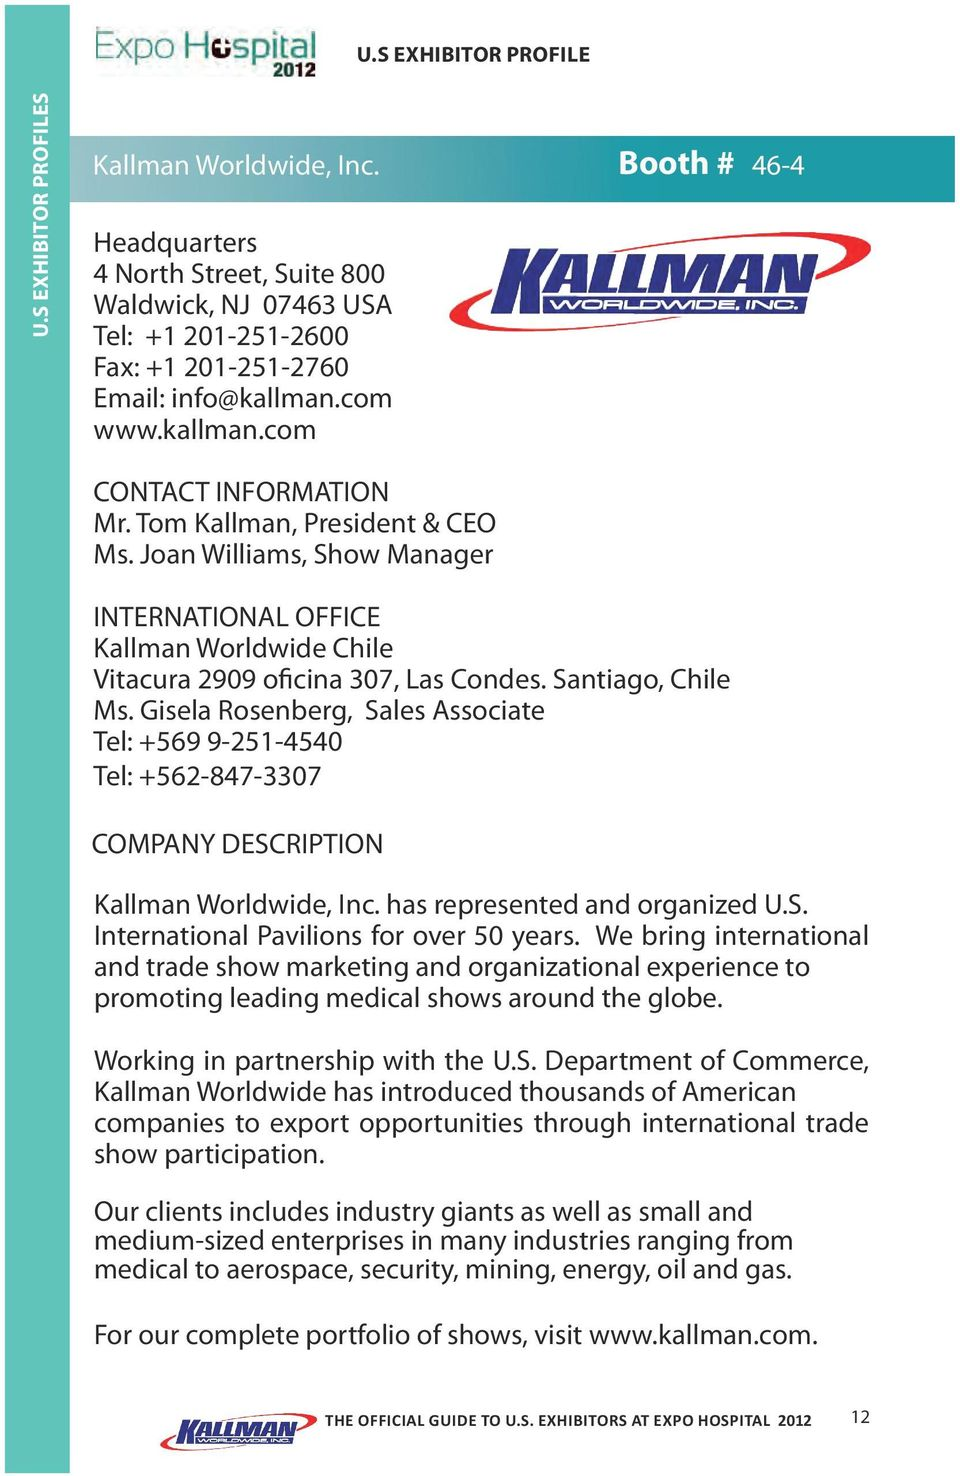 Gisela Rosenberg, Sales Associate Tel: +569 9-251-4540 Tel: +562-847-3307 Kallman Worldwide, Inc. has represented and organized U.S. International Pavilions for over 50 years.